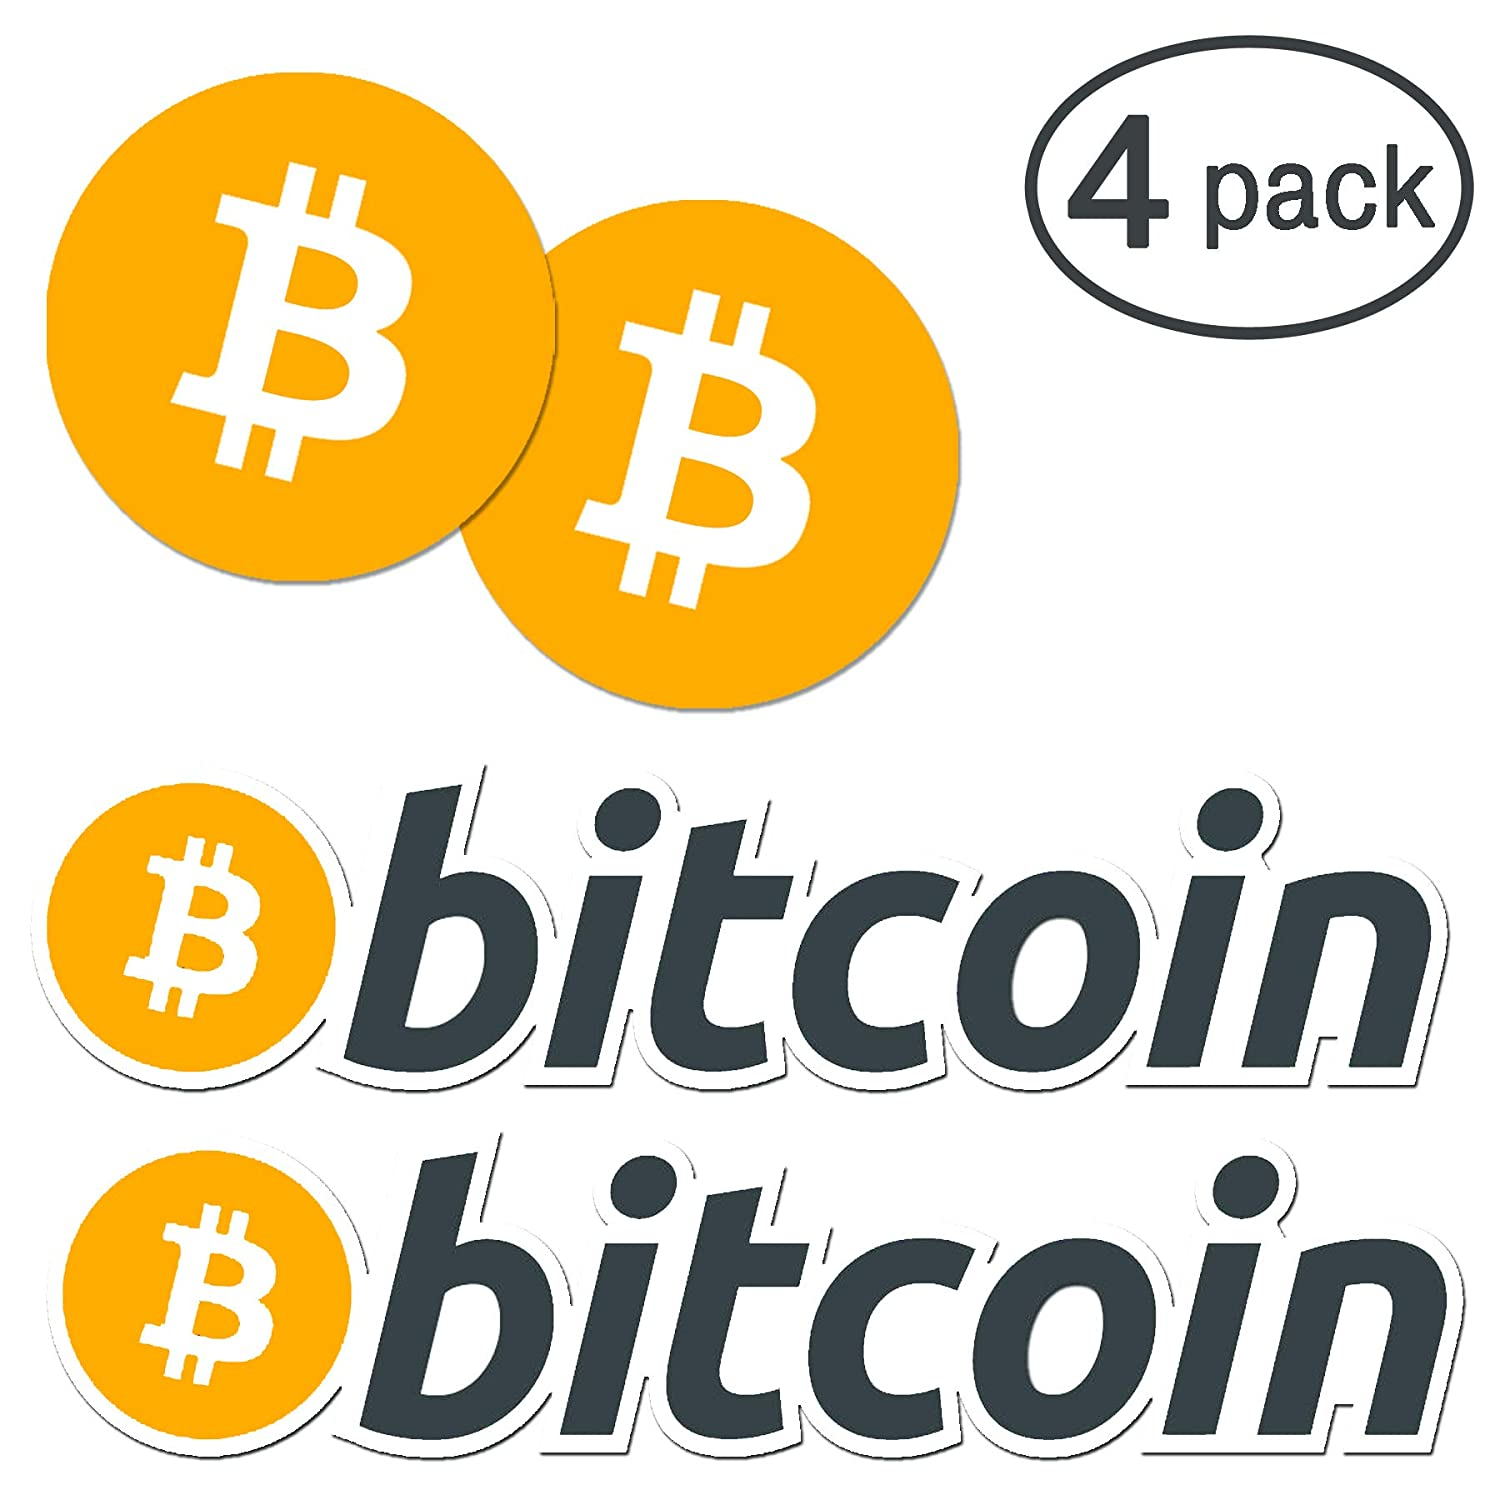 4 pack bitcoin logo vinyl die cut crypto sticker decal set 2 designs bitcoin btc coin decals for laptops notebooks etc for cryptocurrency enthusiasts